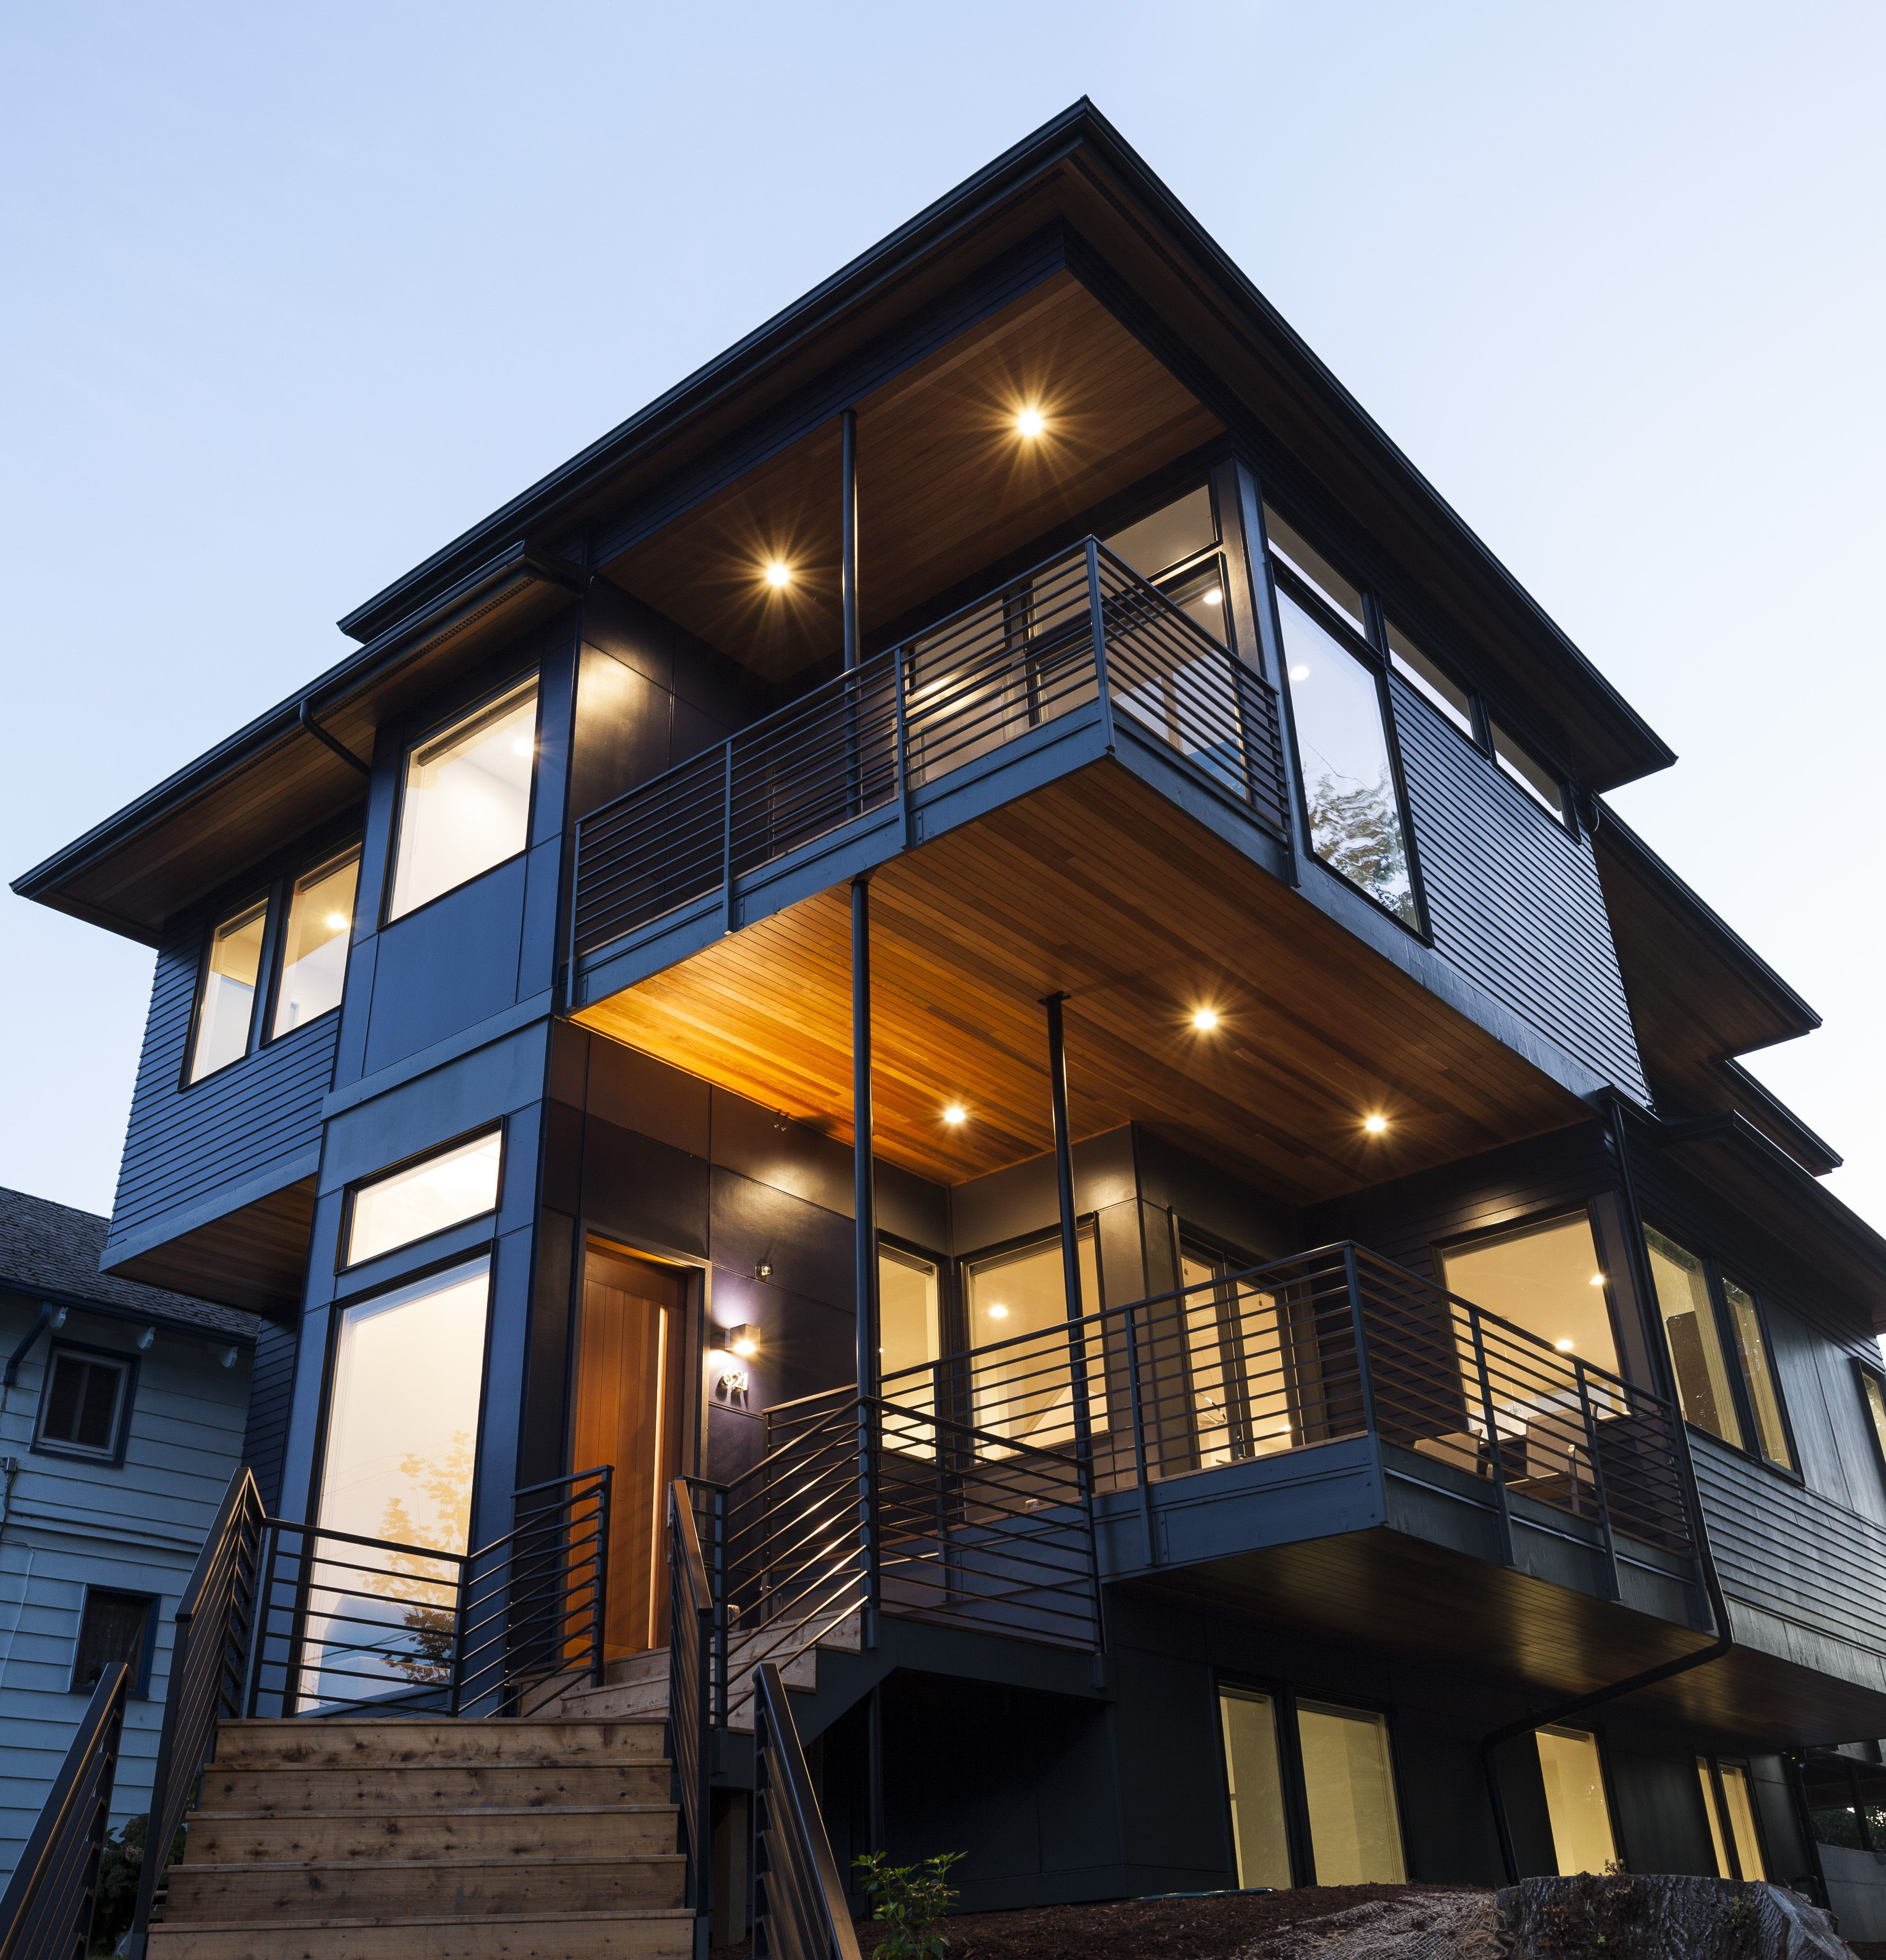 Modern Home In The Capitol Hill Neighborhood Of Seattle Washington Designed By First Lamp Architects First Lamp Architects Builders John Granen Photogra Granen